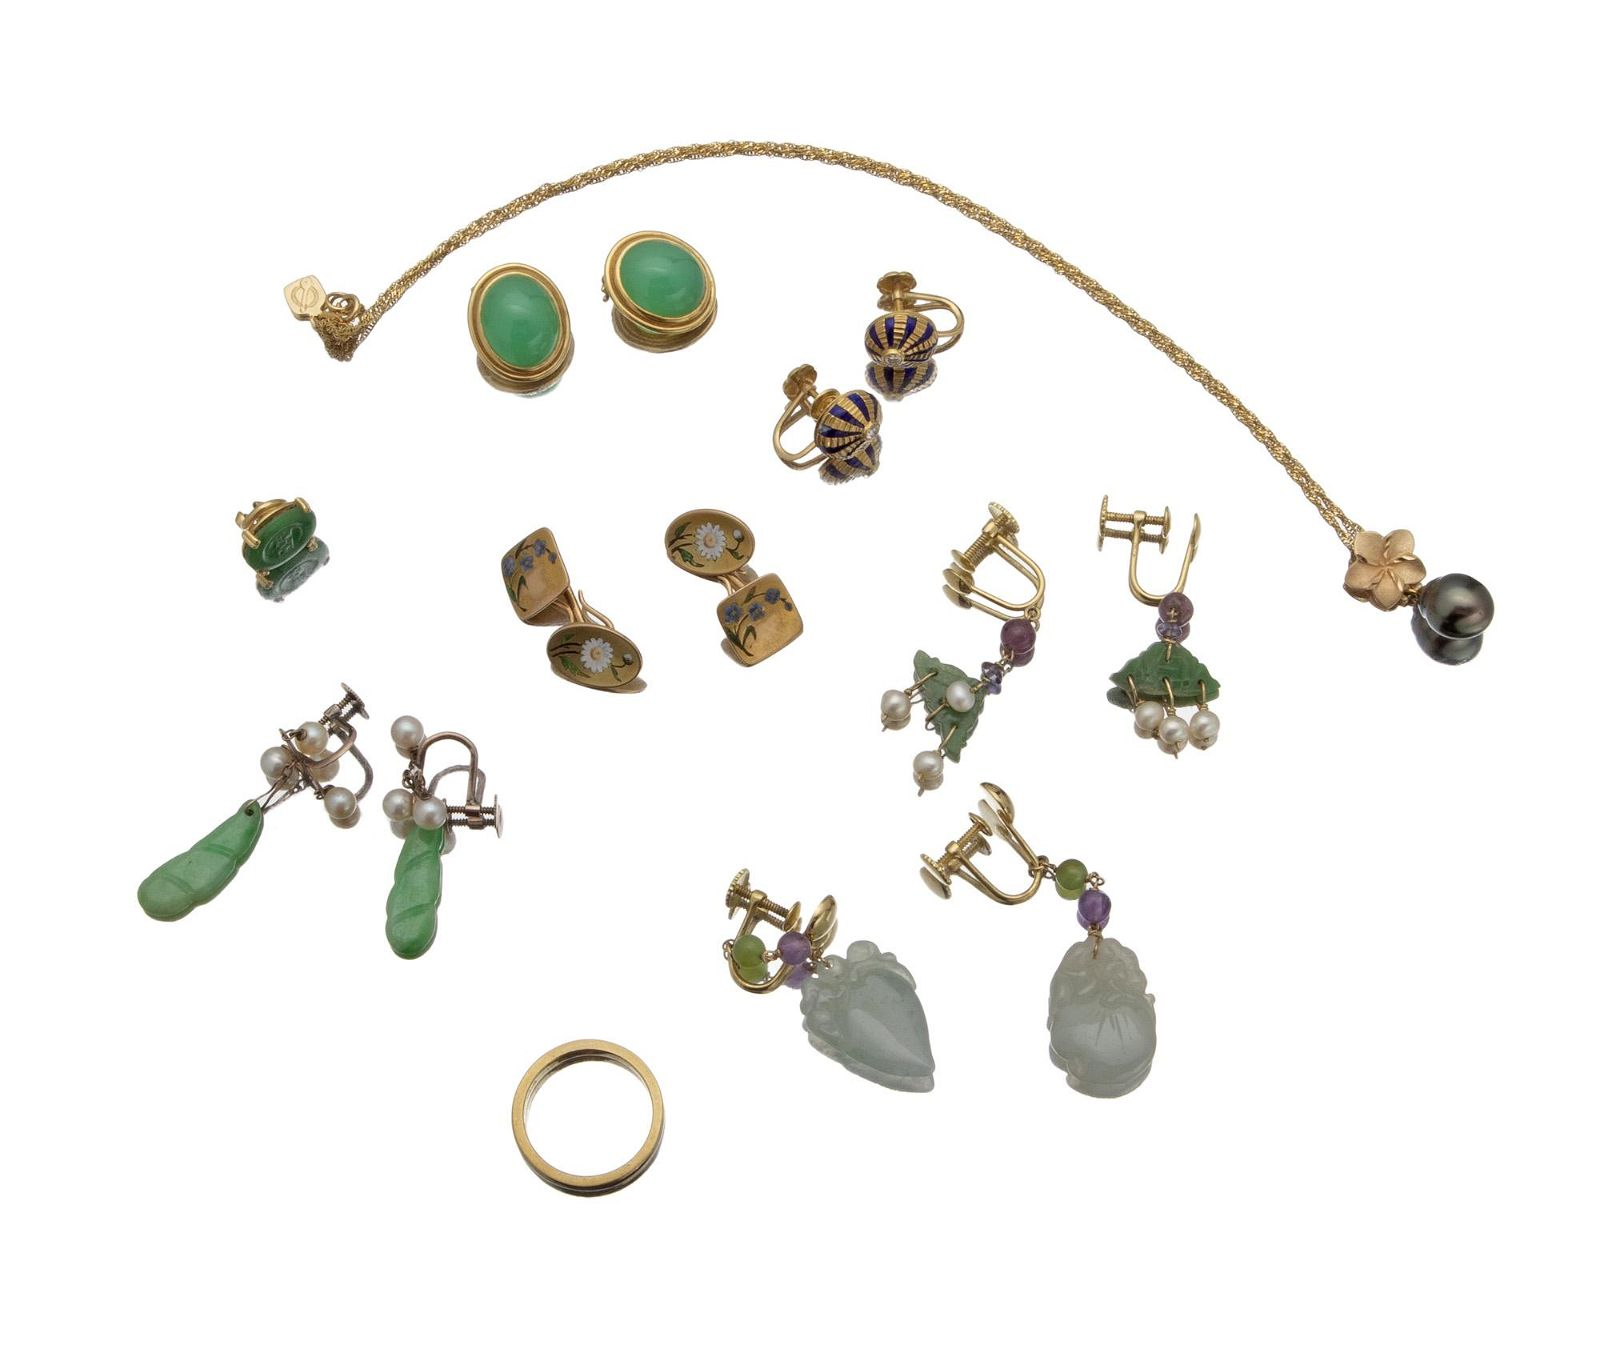 A group of gold jewelry items